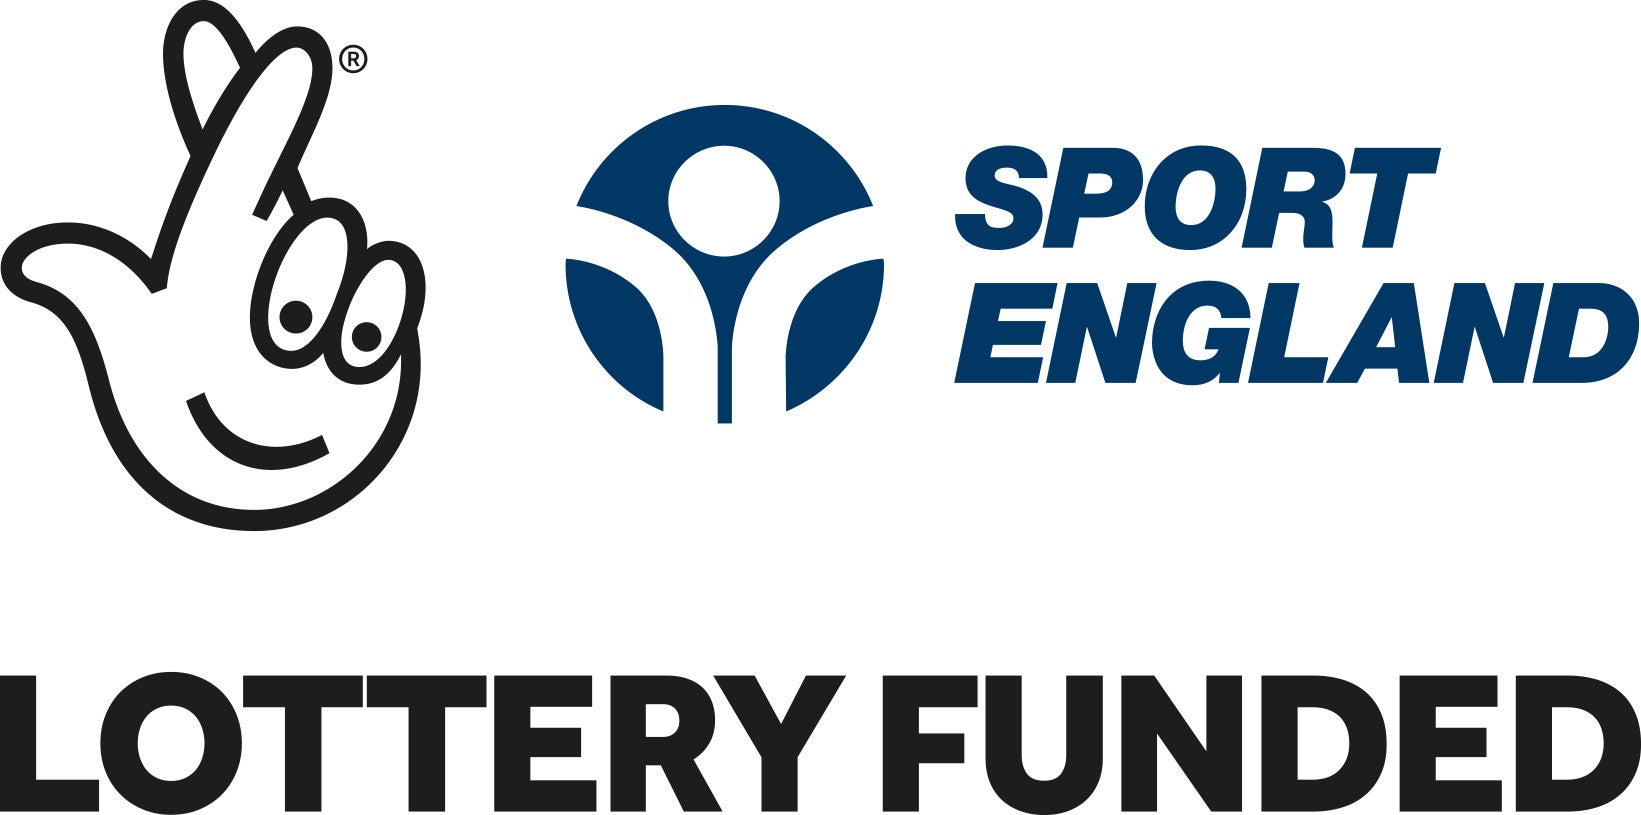 Sport England and Lottery Funded